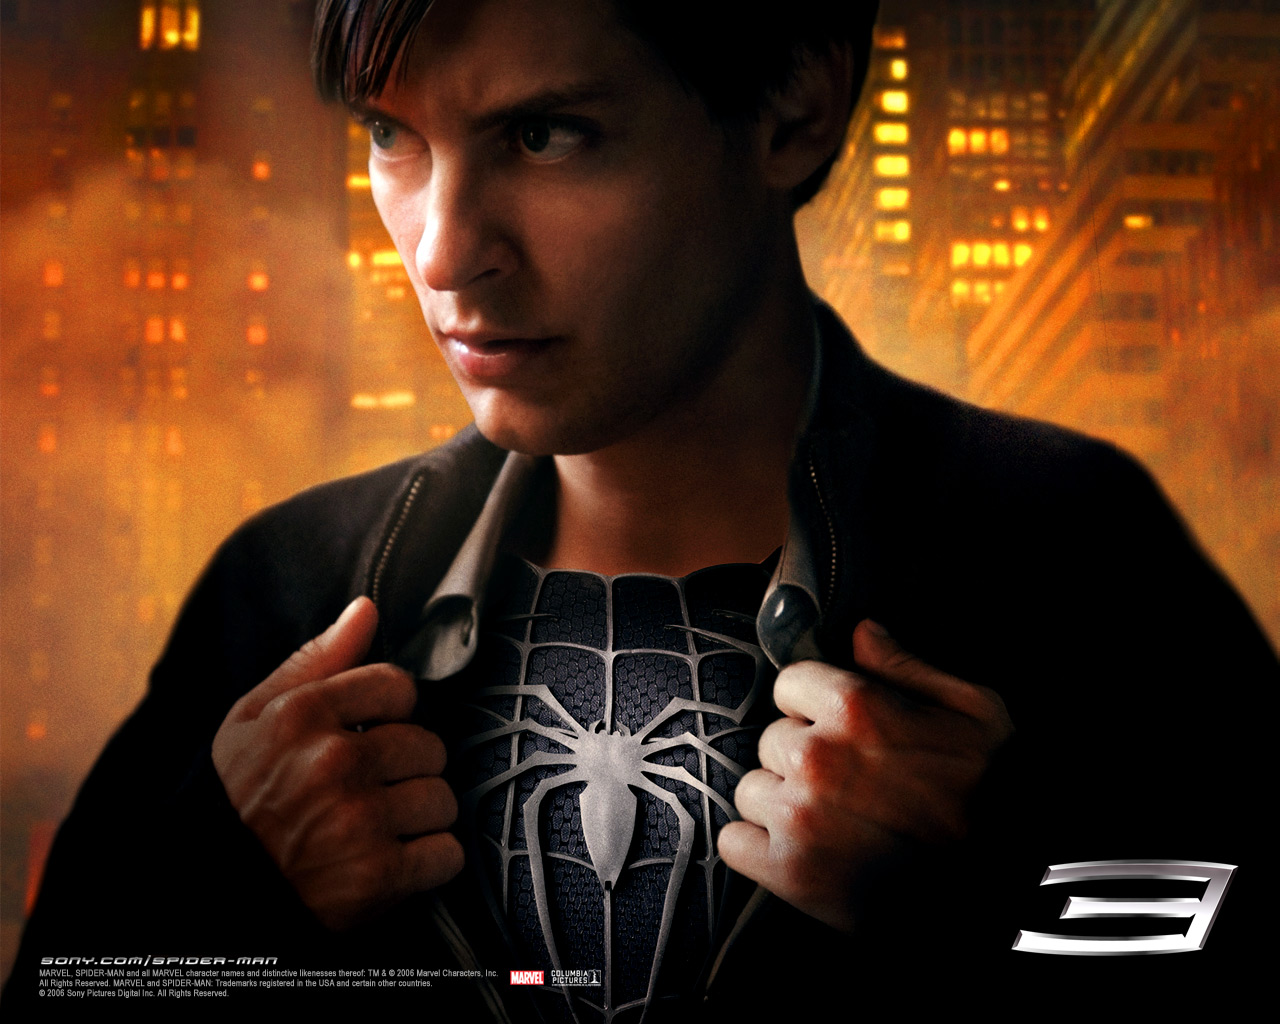 Spider man 3 wallpapers spider man wallpaper Amazing Wallpapers 1280x1024